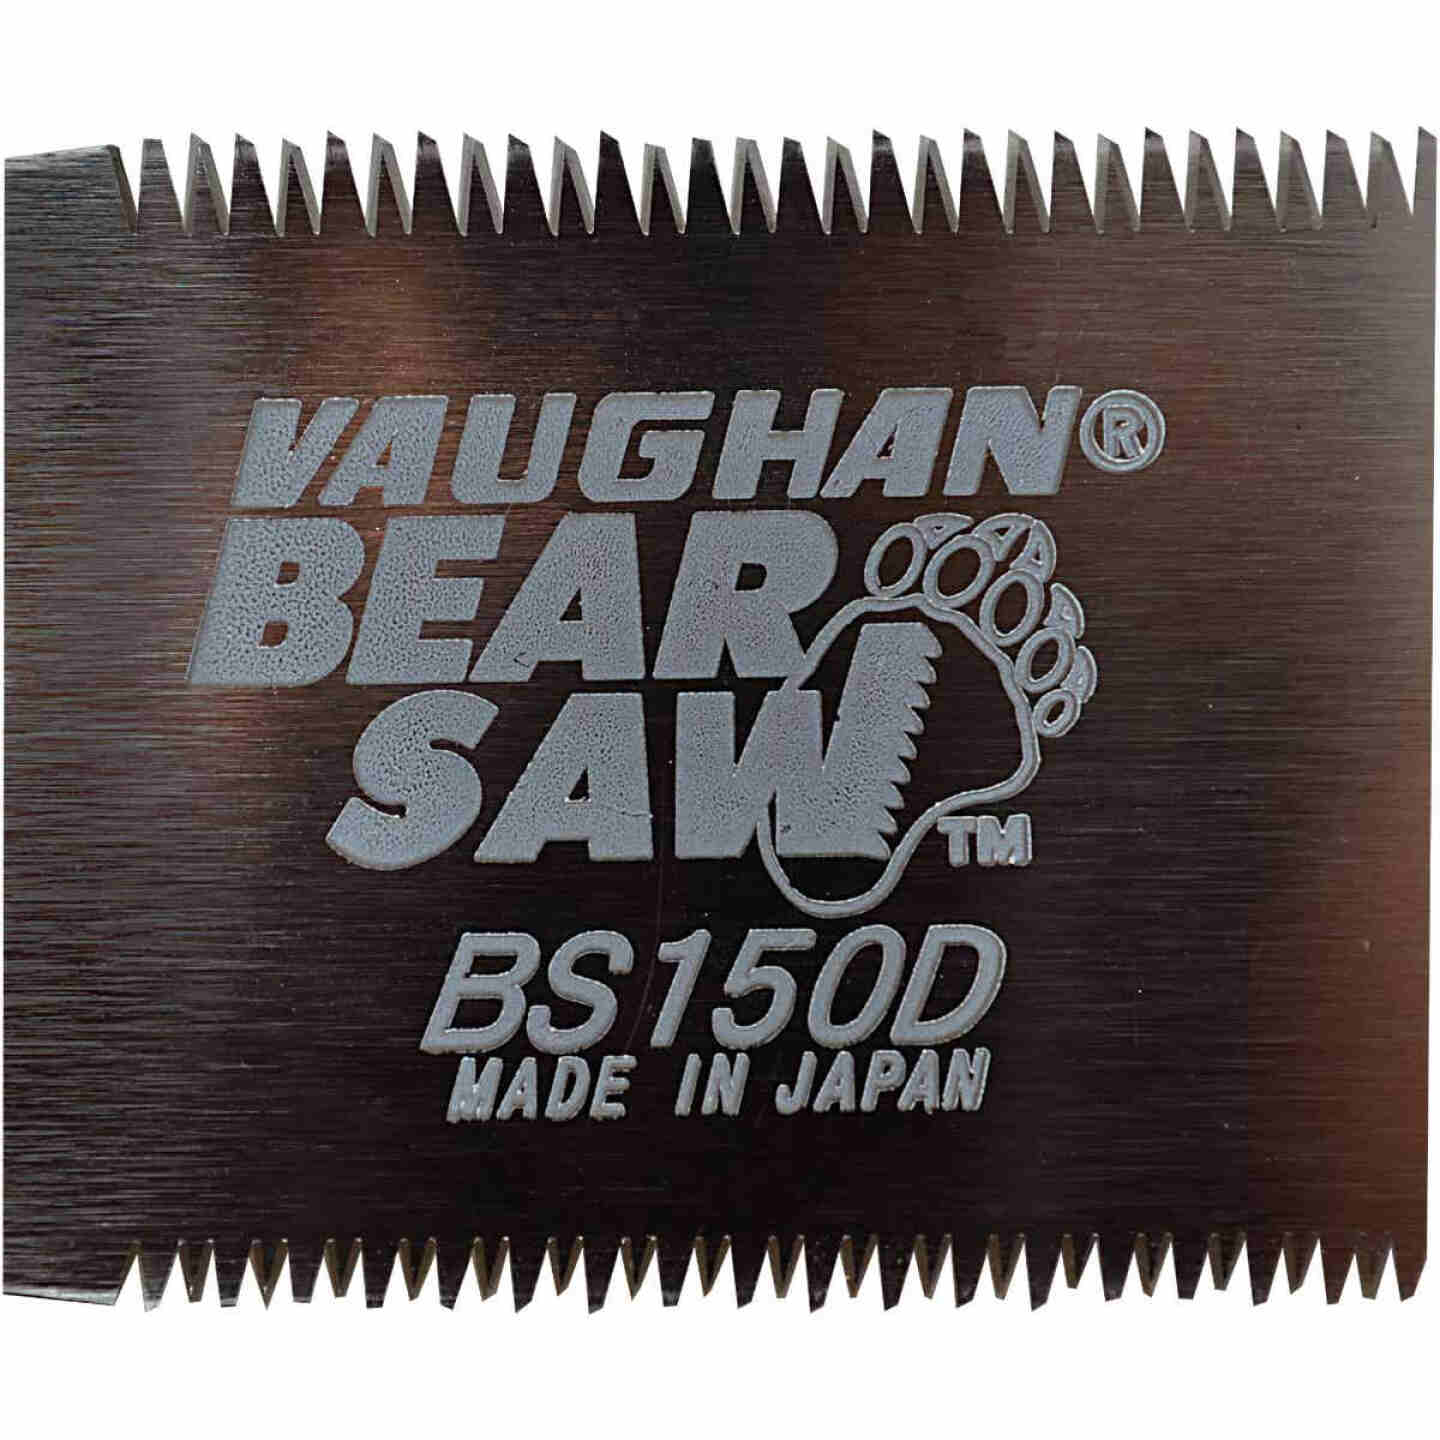 Vaughan 5-1/2 In. 17 & 21 tpi Fine & Extra Fine Cut Mini Double Edge Pull Saw Image 3